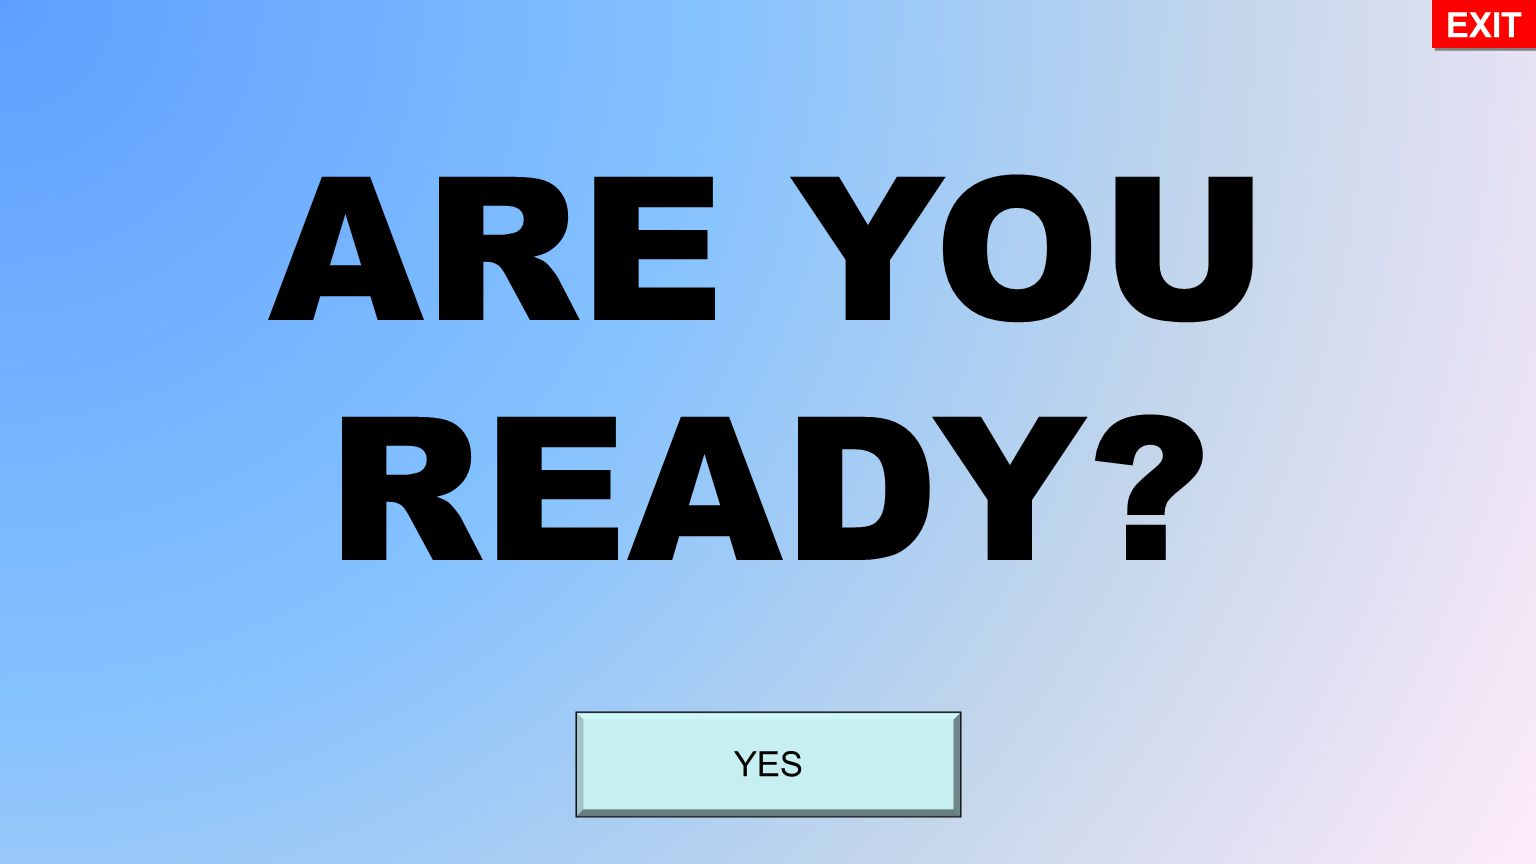 YES ARE YOU READY? EXIT